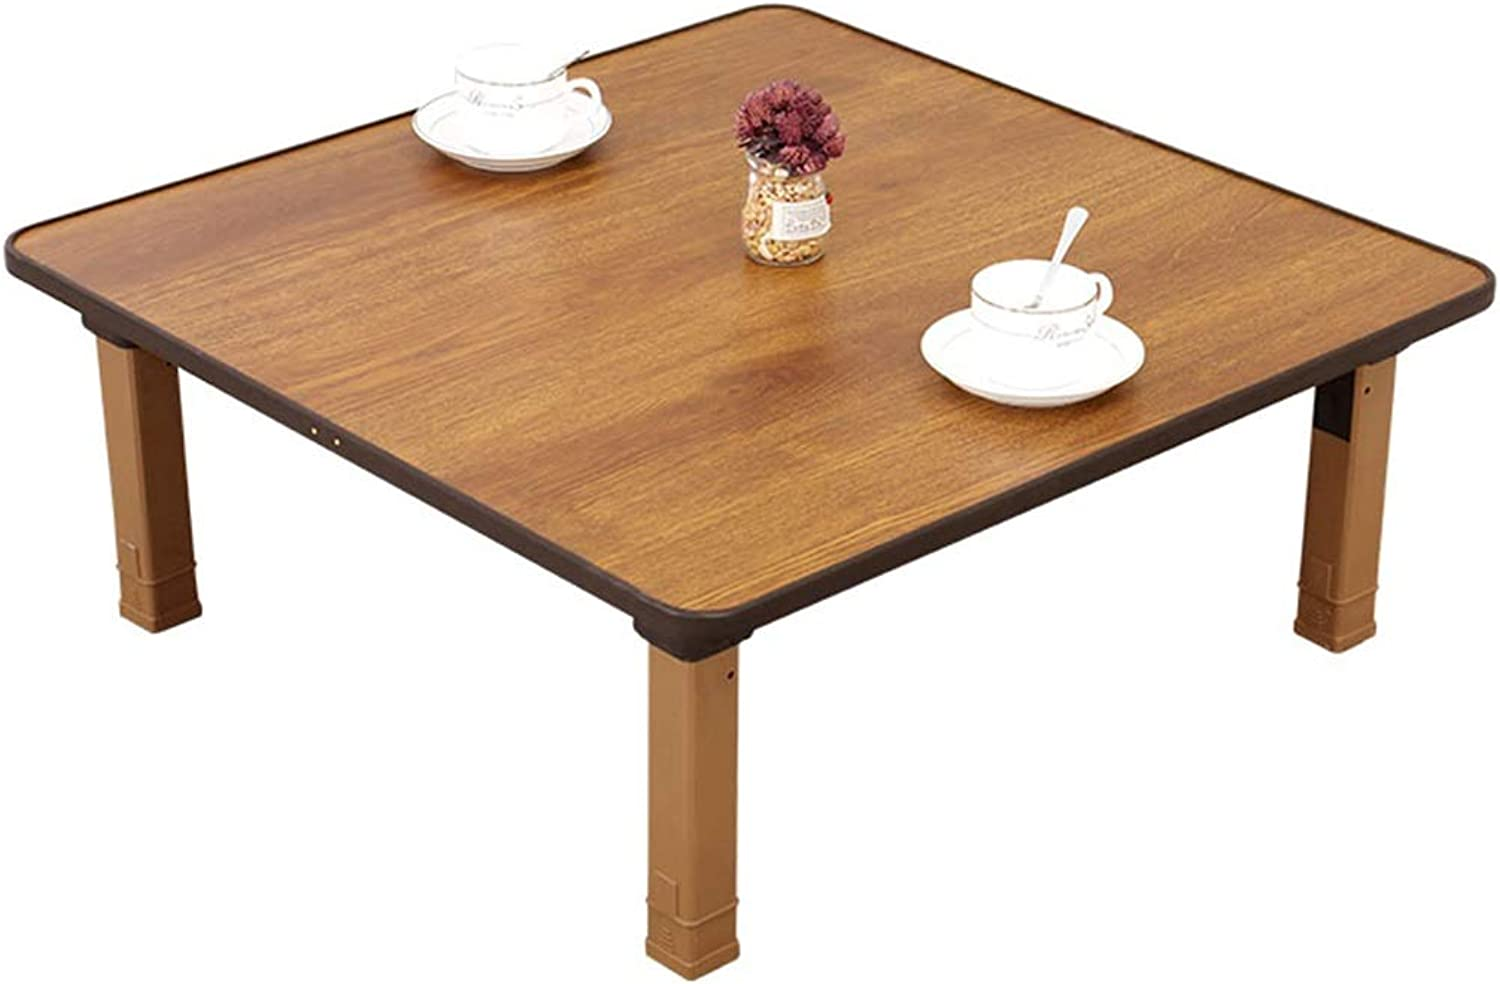 Dining Tables Table Bed Folding Table Home Dining Table Ground Table Small Table Tatami Bay Window Table Low Table Small Square Table Brown (color   Brown, Size   60  60  28cm)